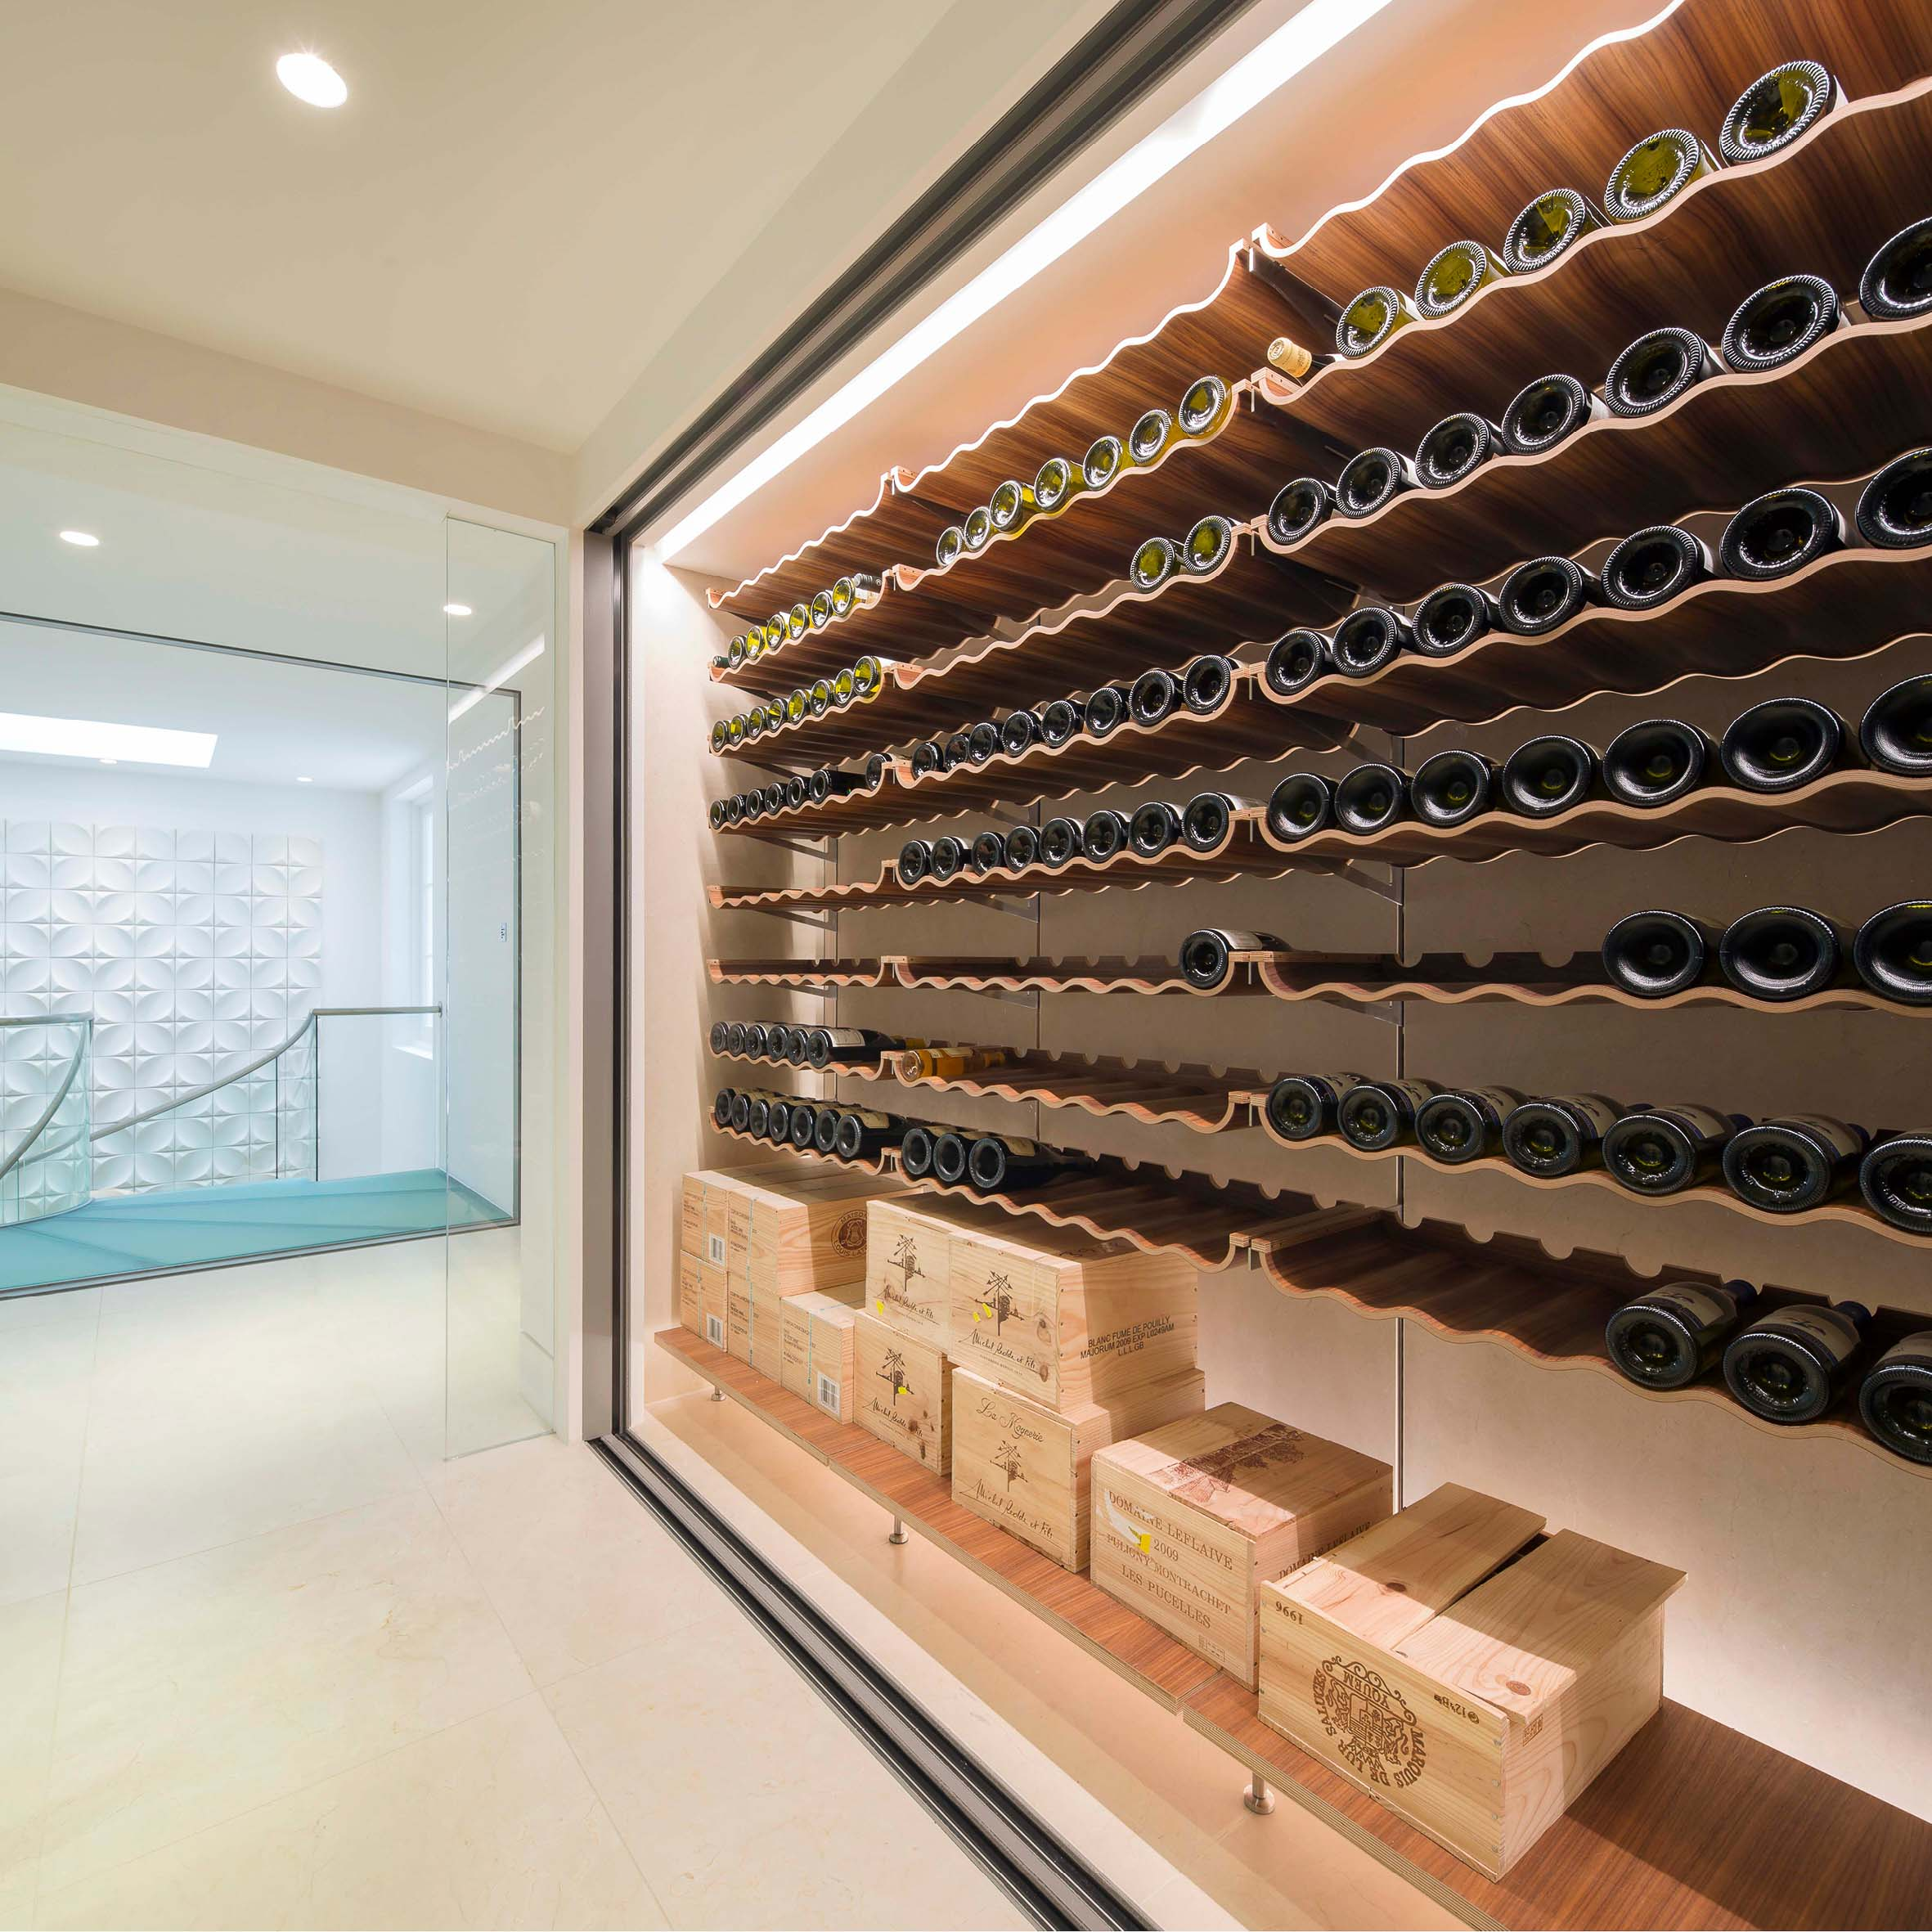 The 200 bottle wine store linking the main house to the swiming pool.